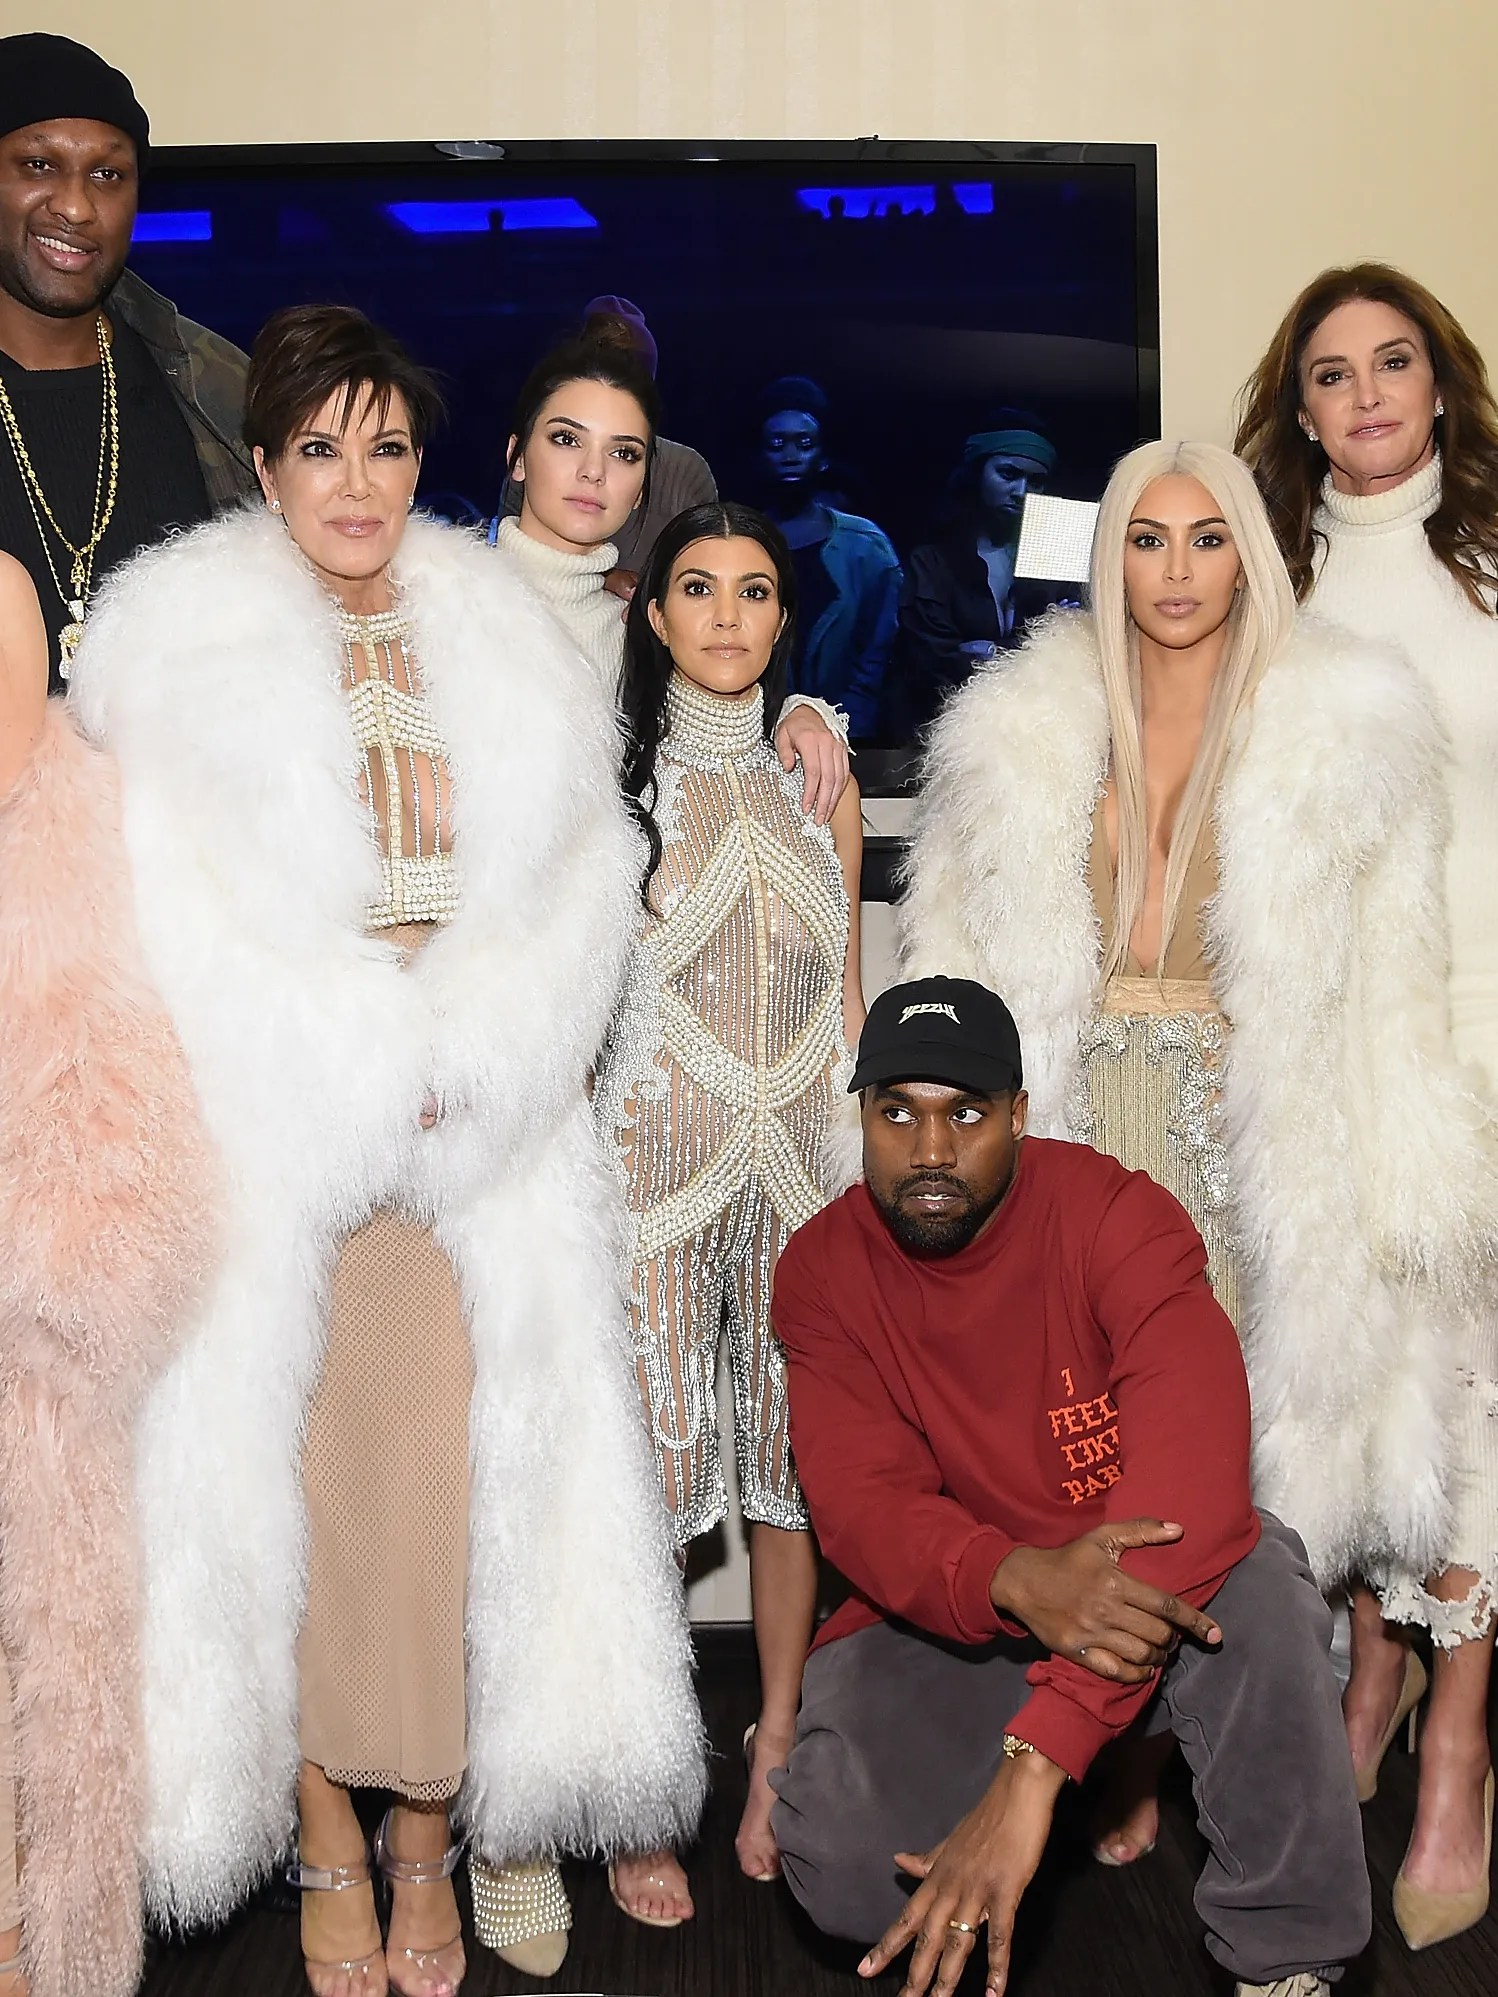 Gangs all here. Khloe Kardashian, Lamar Odom, Kris Jenner, Kendall Jenner, Kourtney Kardashian, Kanye West, Kim Kardashian, Caitlin Jenner and Kylie Jenner attend Kanye West Yeezy Season 3 on February 11, 2016.